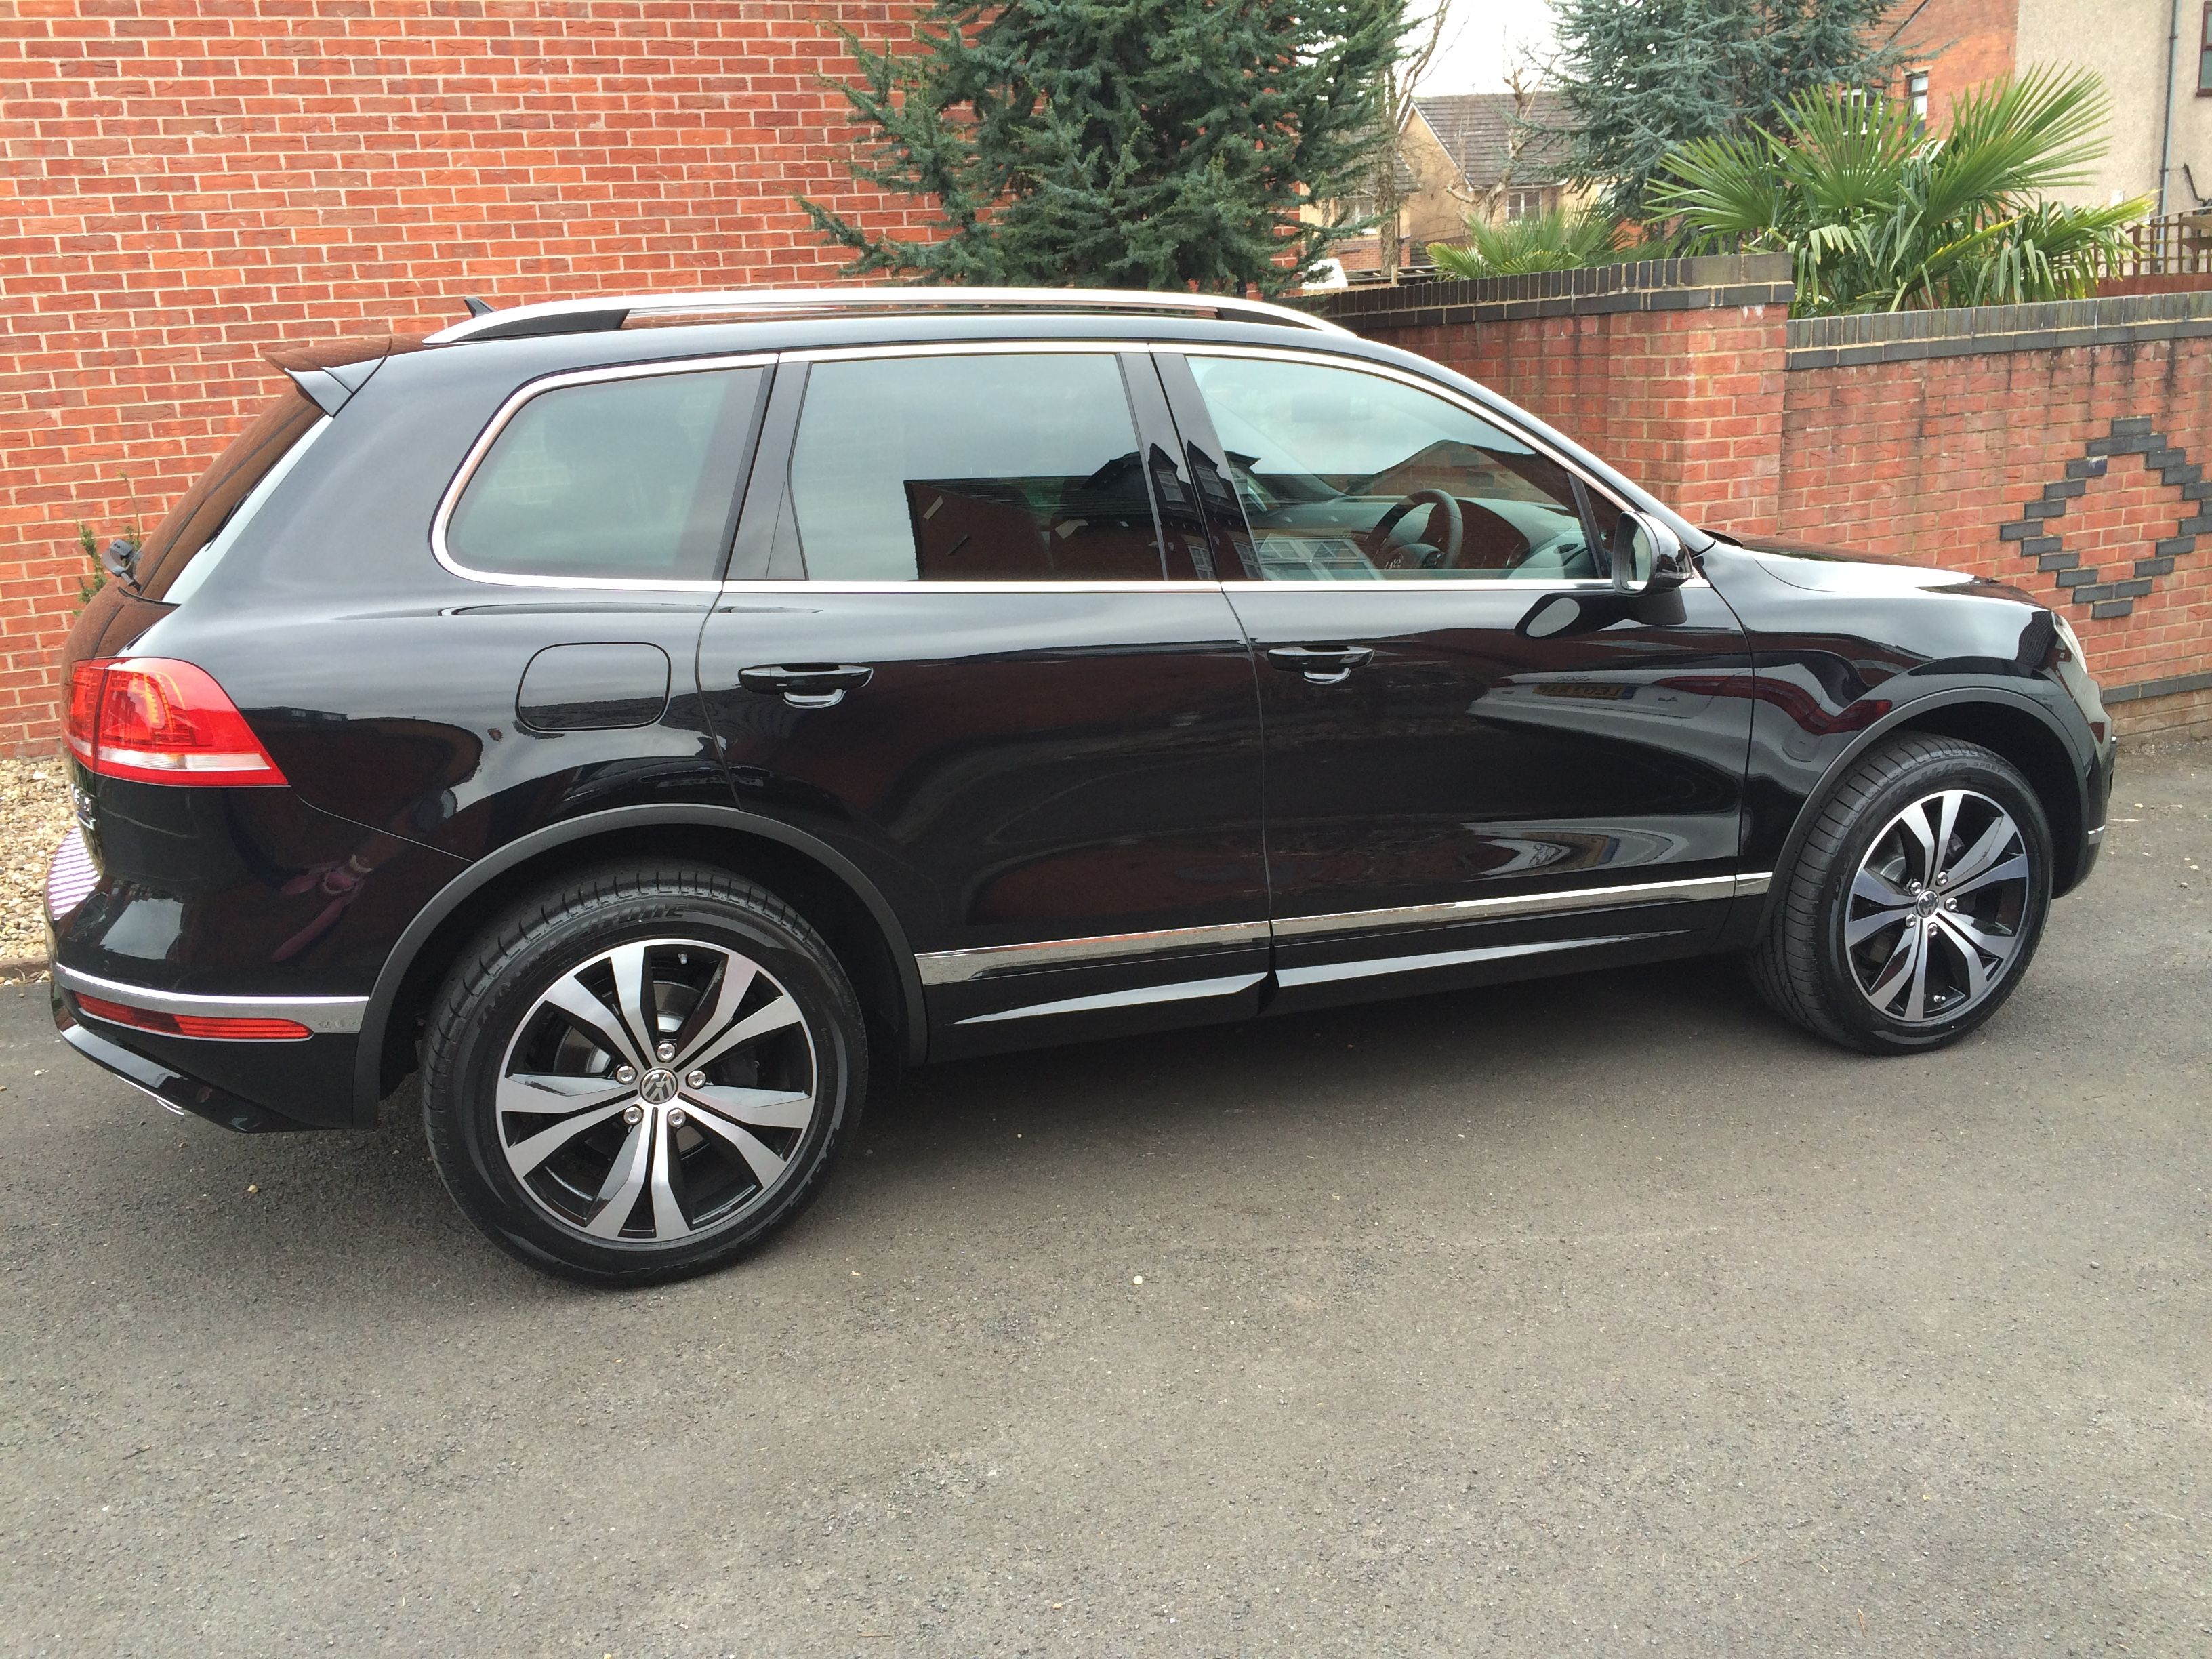 The Volkswagen Touareg carleasing deal One of the many